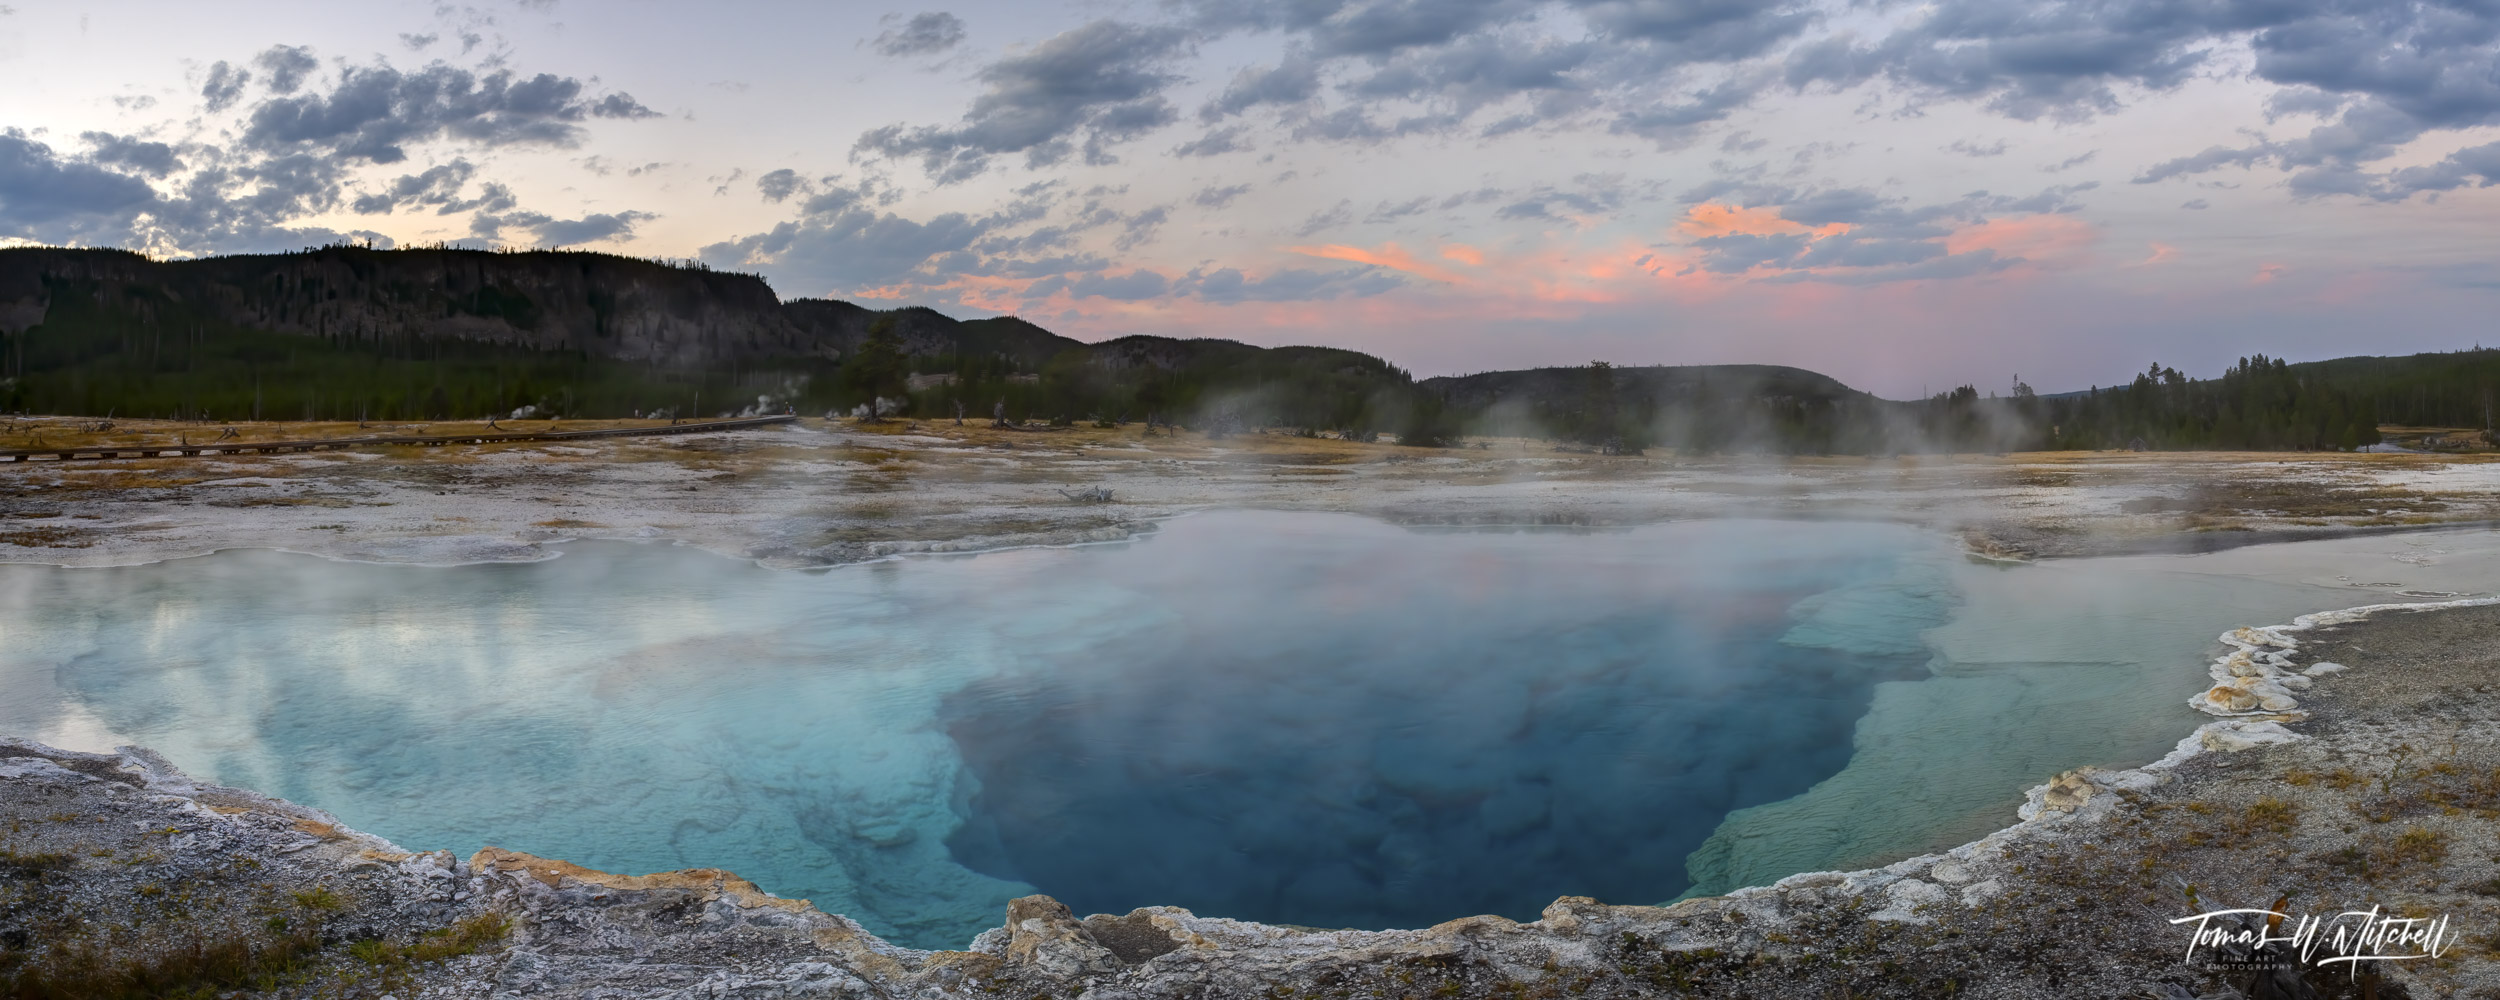 Sapphire Pool at sunset in Yellowstone national park